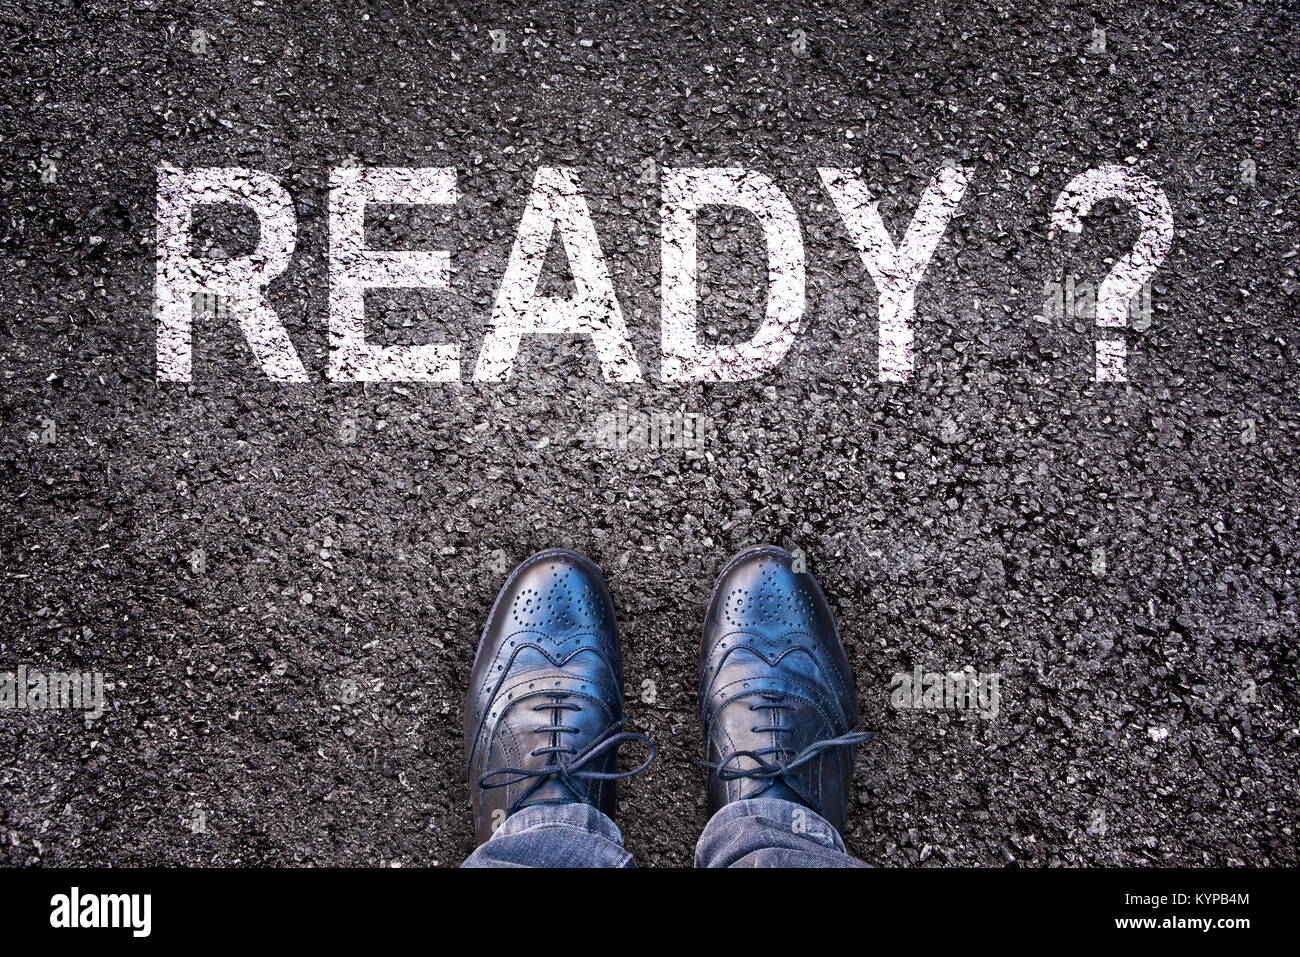 Question Ready ? written on an asphalt road with legs and shoes - Stock Image